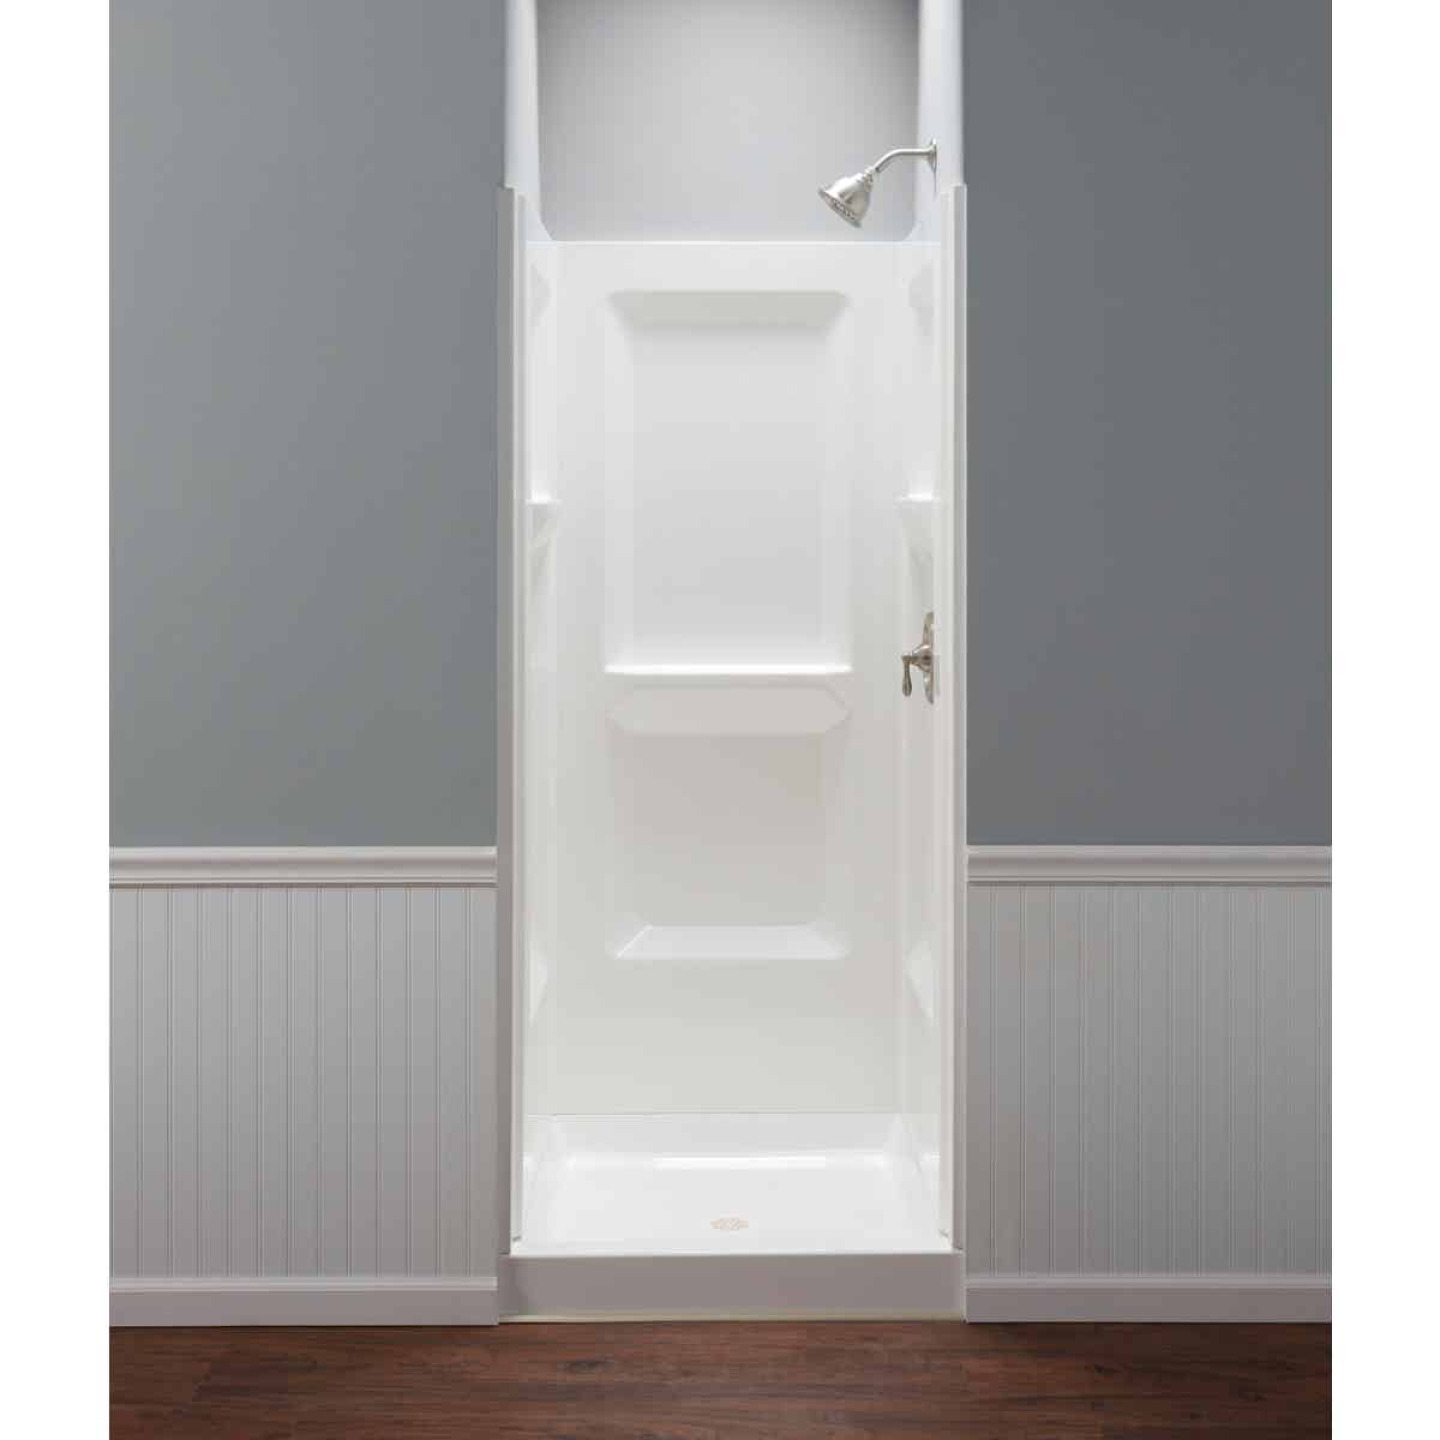 Mustee Durawall Model 700 3-Piece 32 In. W x 32 In. D Shower Wall Set in White Image 2